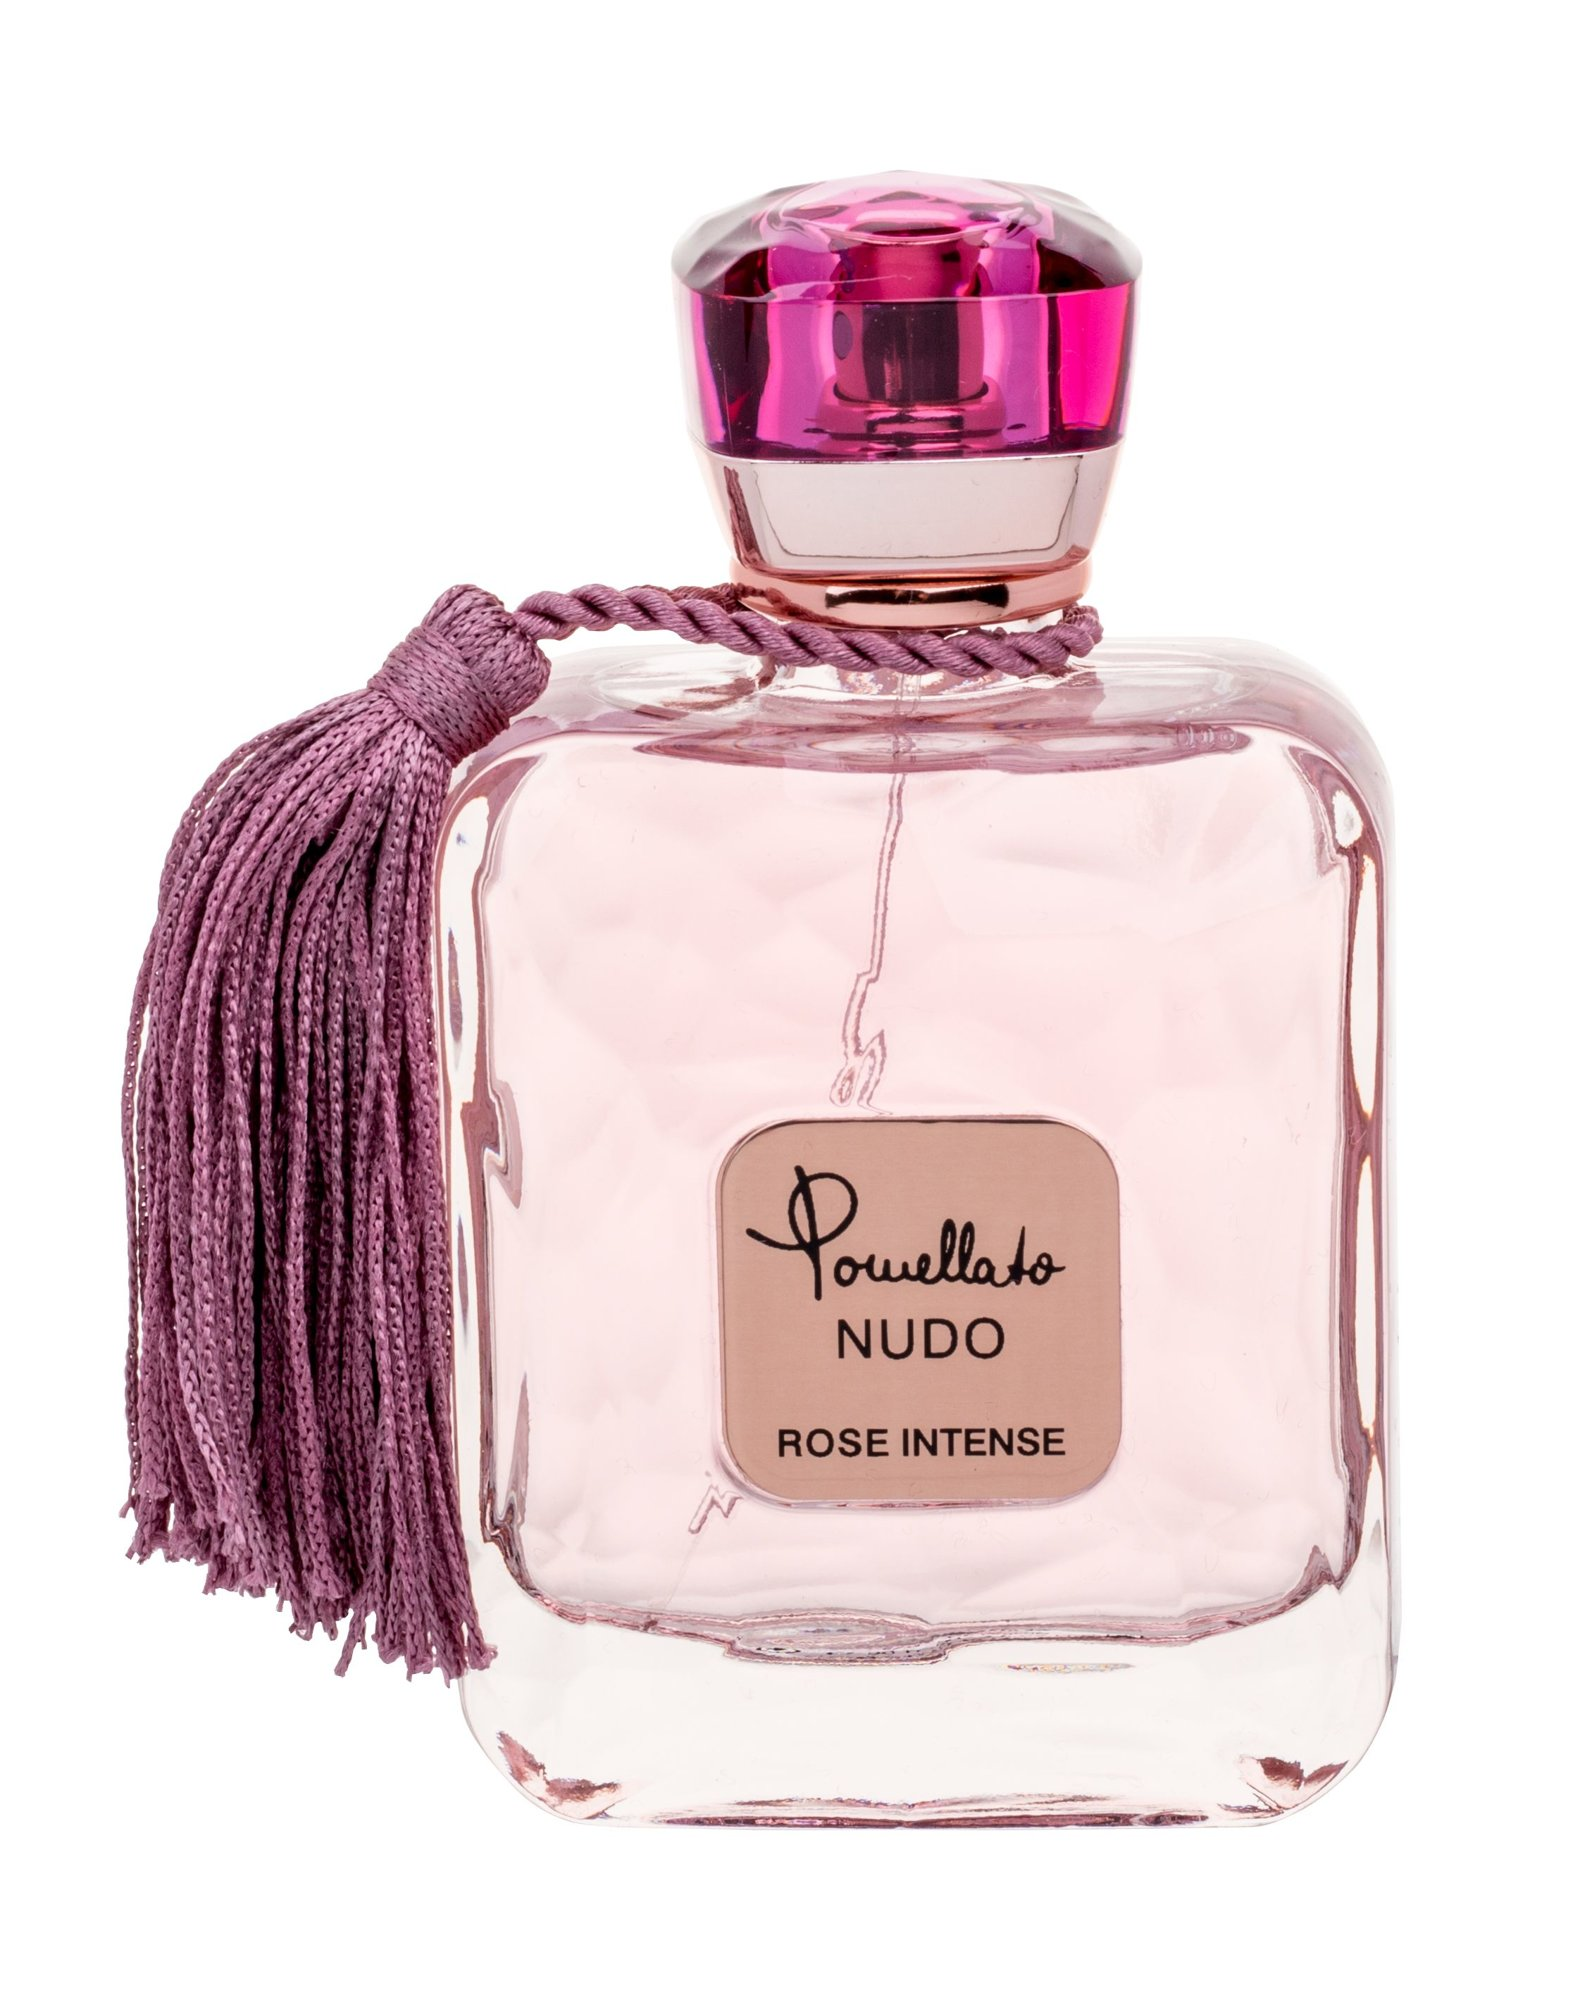 Pomellato Nudo Rose Intense EDP 90ml